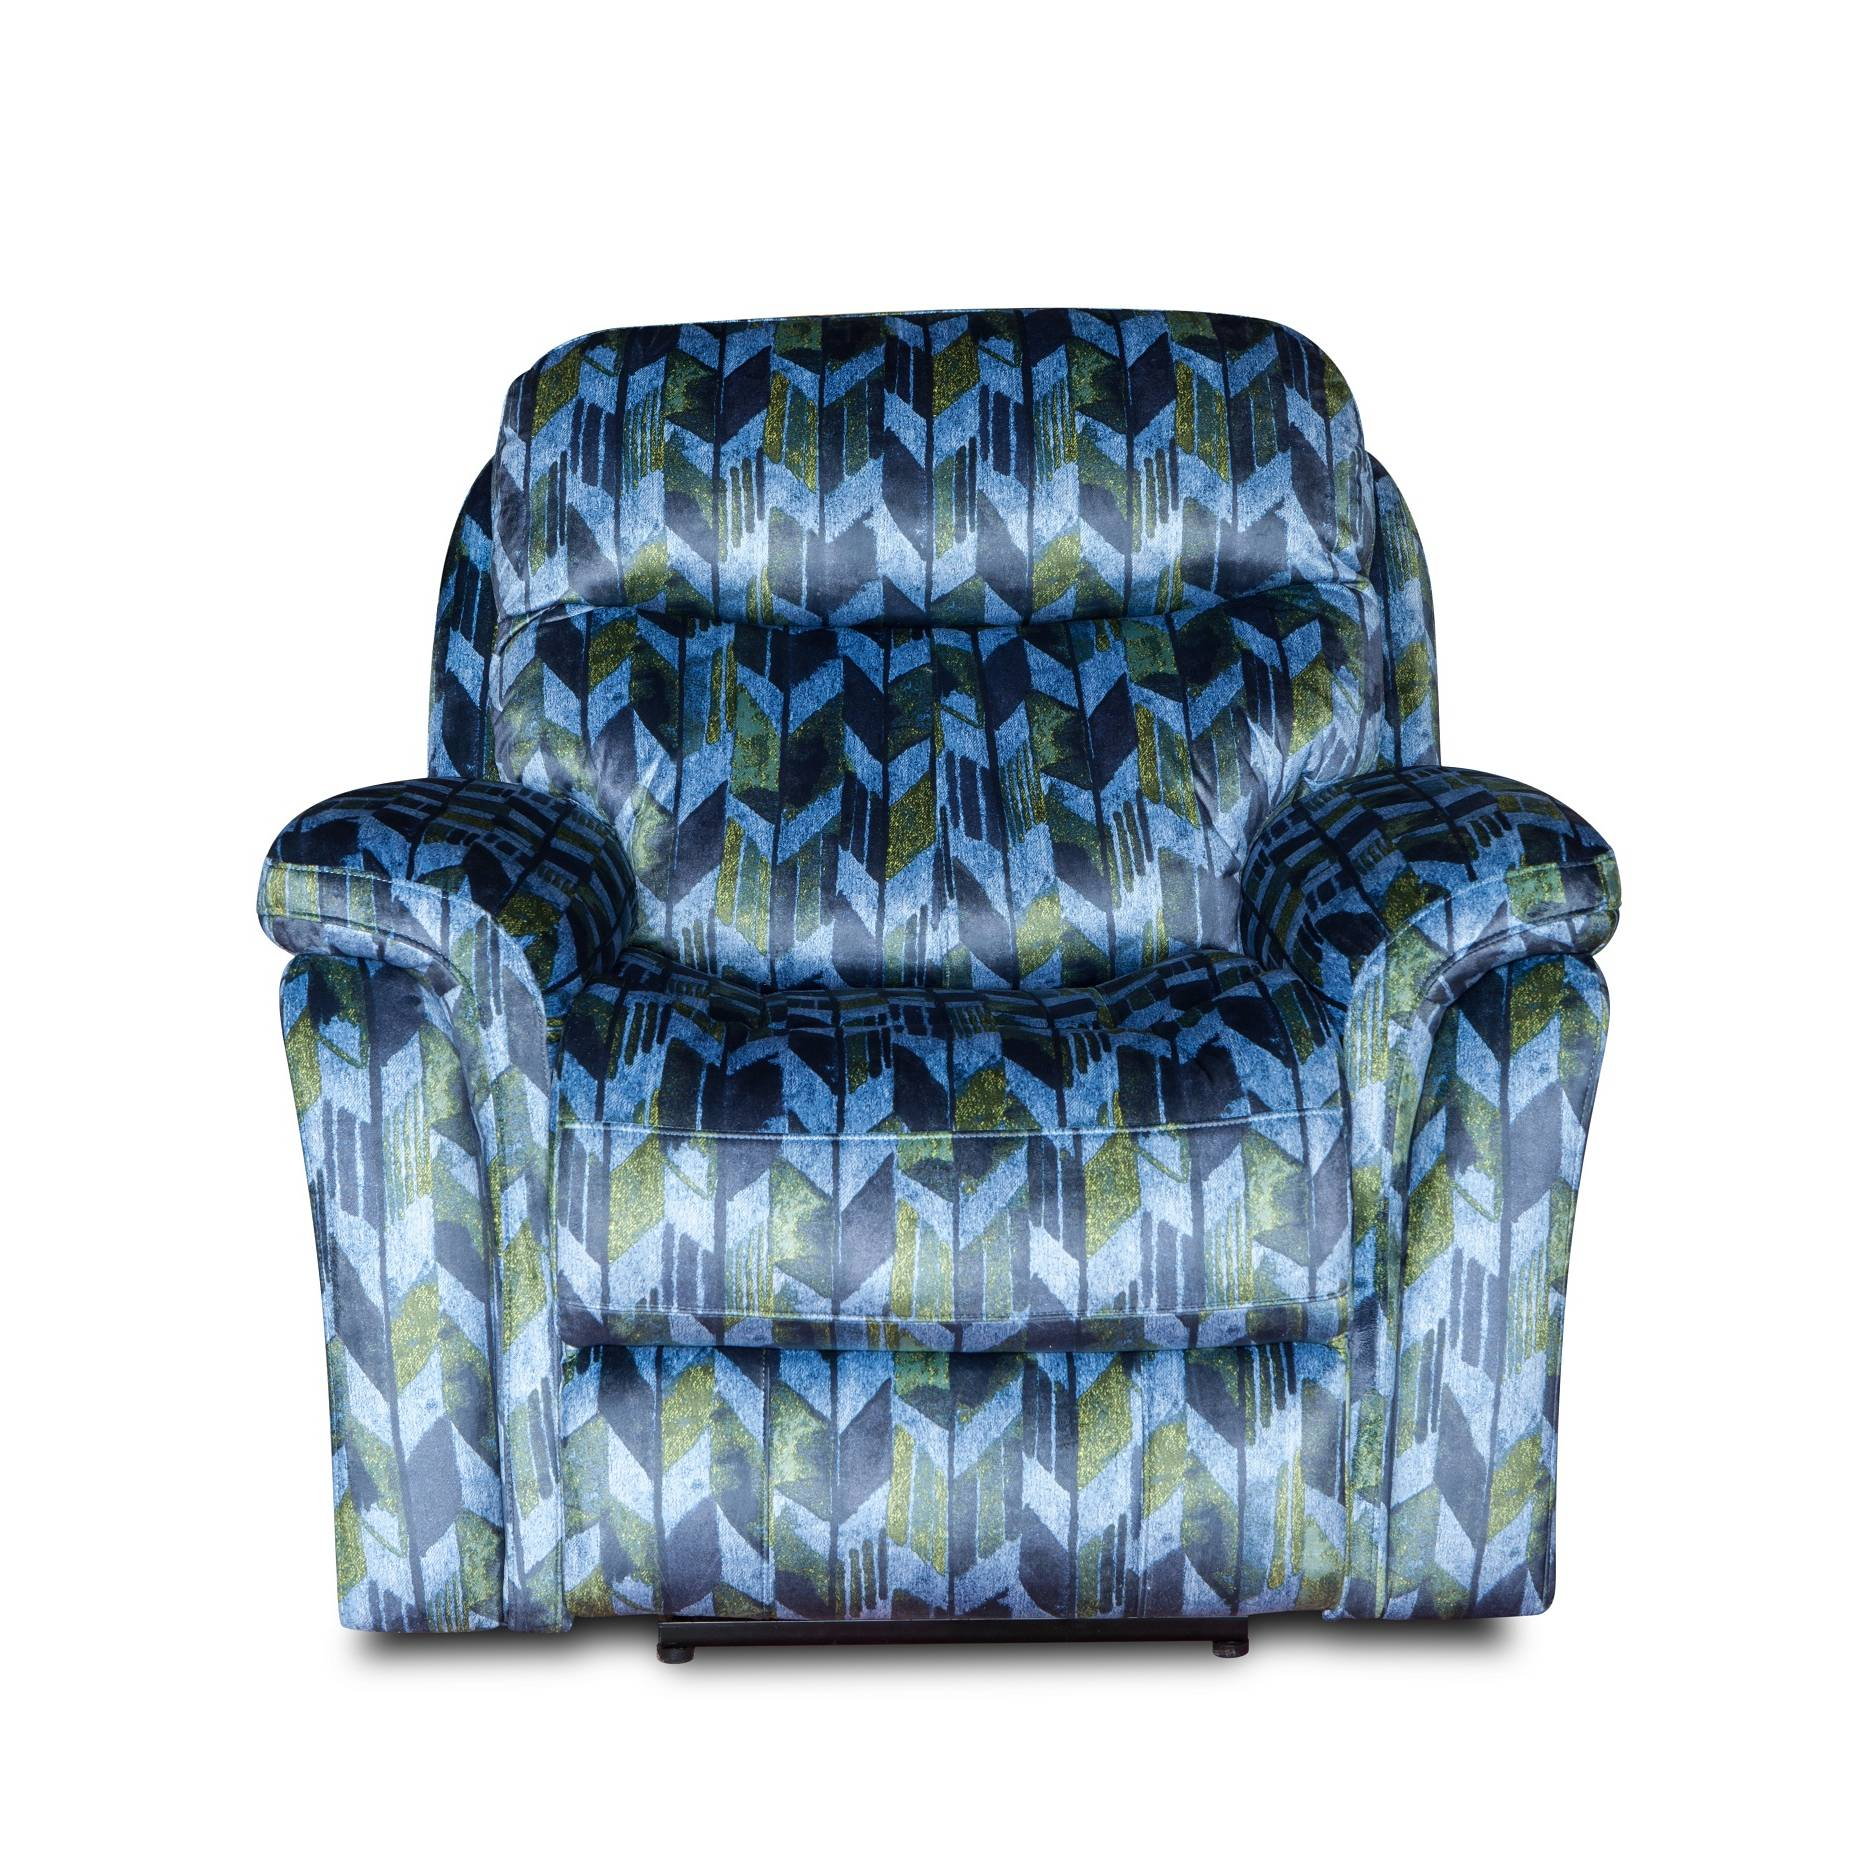 New Style Fabric Pattern Design Modern Electric Recliner Chair